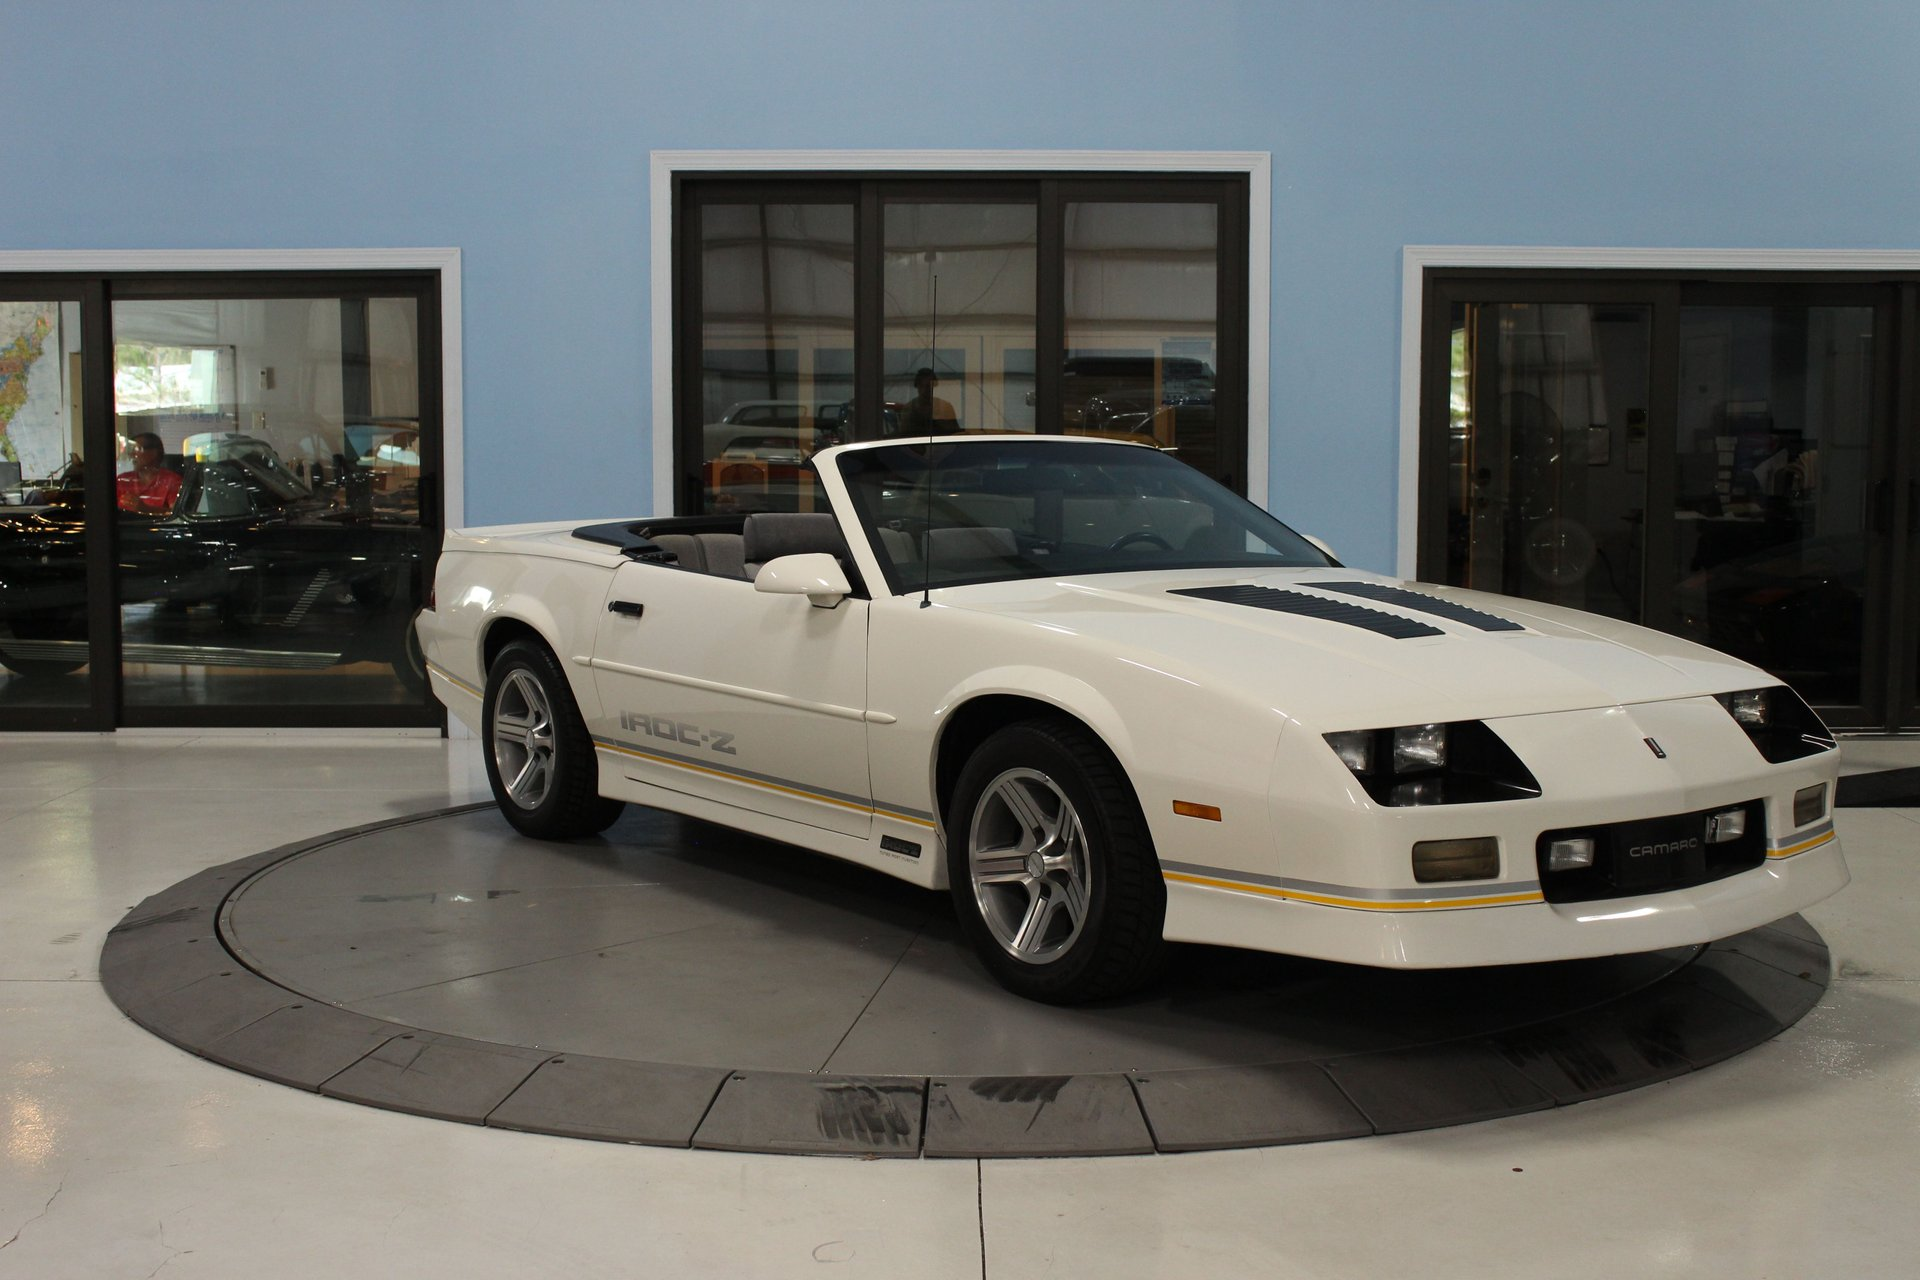 1990 chevrolet iroc z28 convertible classic cars used cars for sale in tampa fl 1990 chevrolet iroc z28 convertible